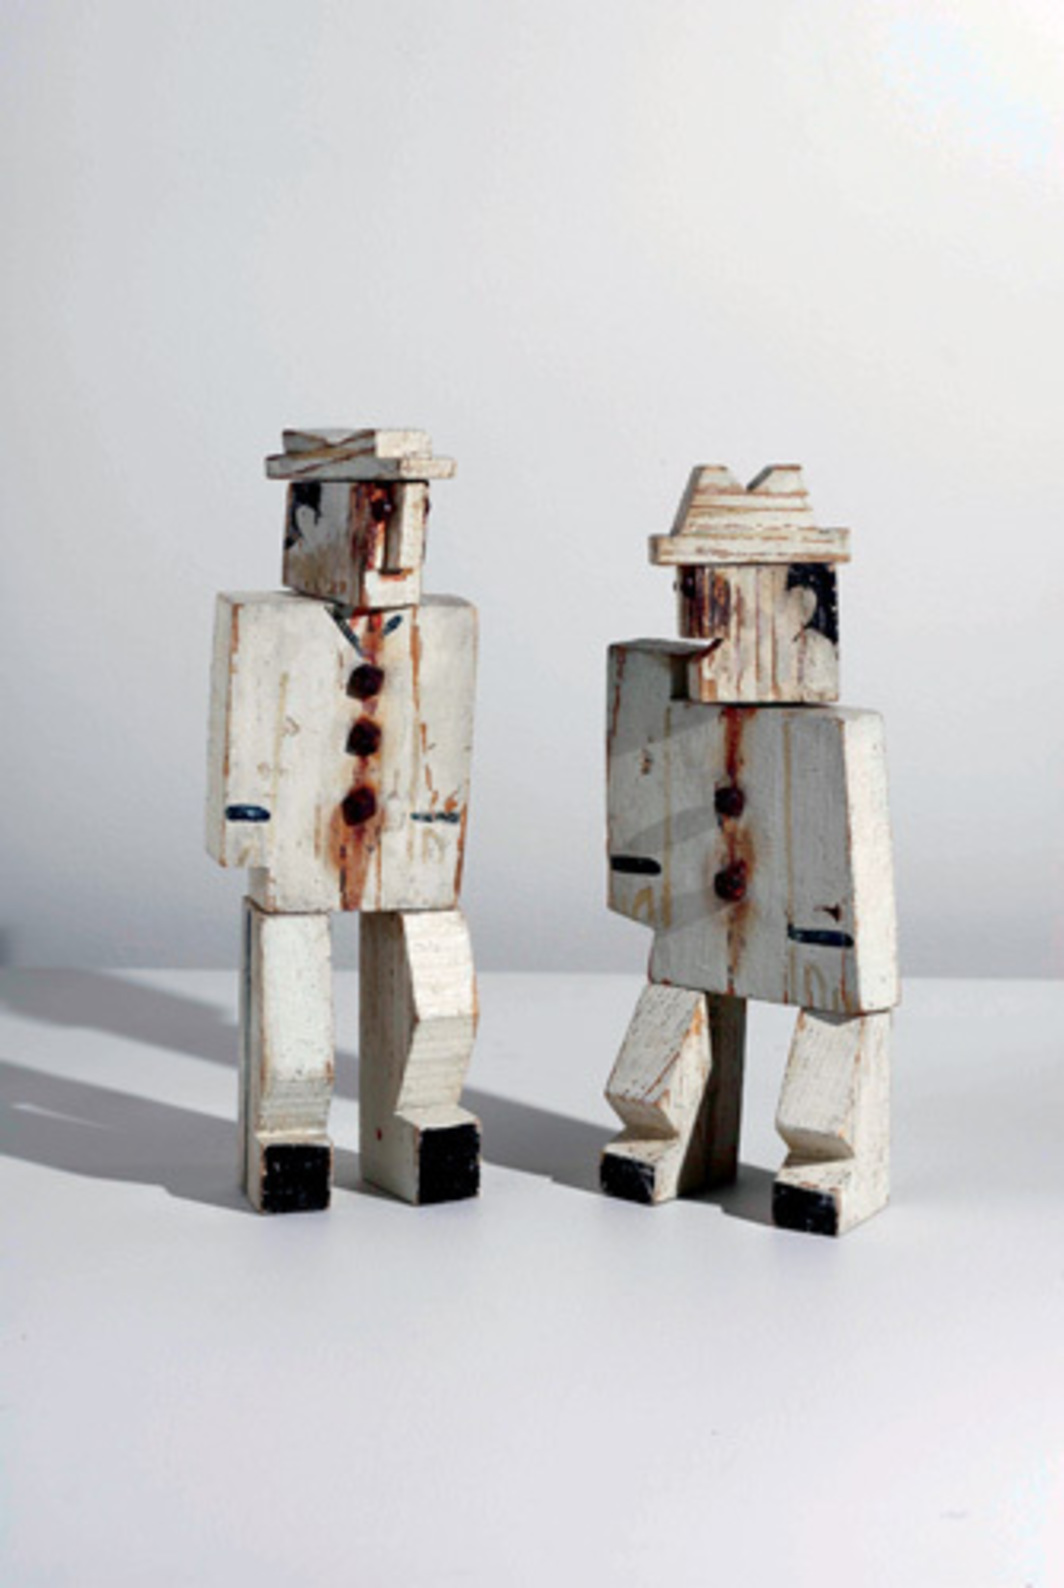 "Joaquín Torres-García, Two White Men, ca. 1929, oil and iron tacks on wood, two parts, from left: 10 1/4 x 3 1/2 x 3/4"", 8 3/4 x 3 x 3/4""."